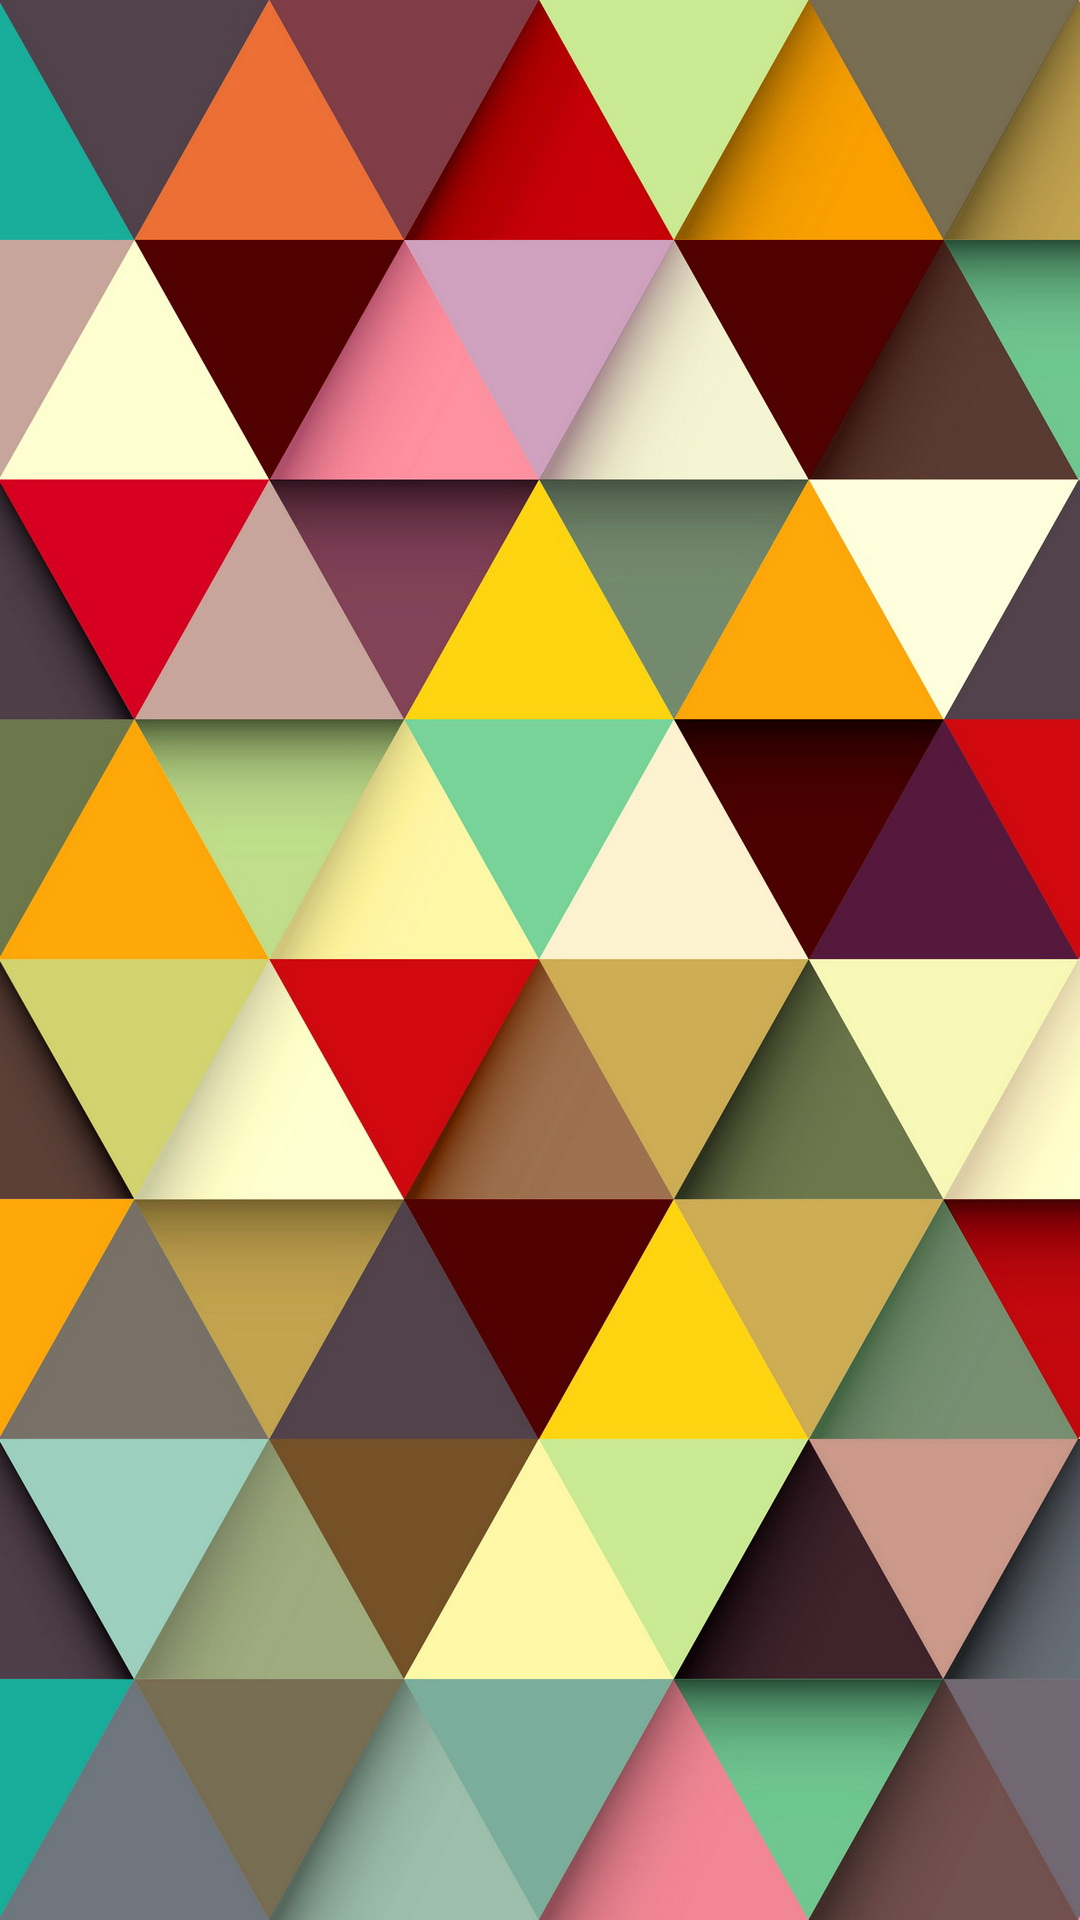 Free Colorful Geometric Wallpaper: 25 HD Wallpapers For IPhone 6 Plus